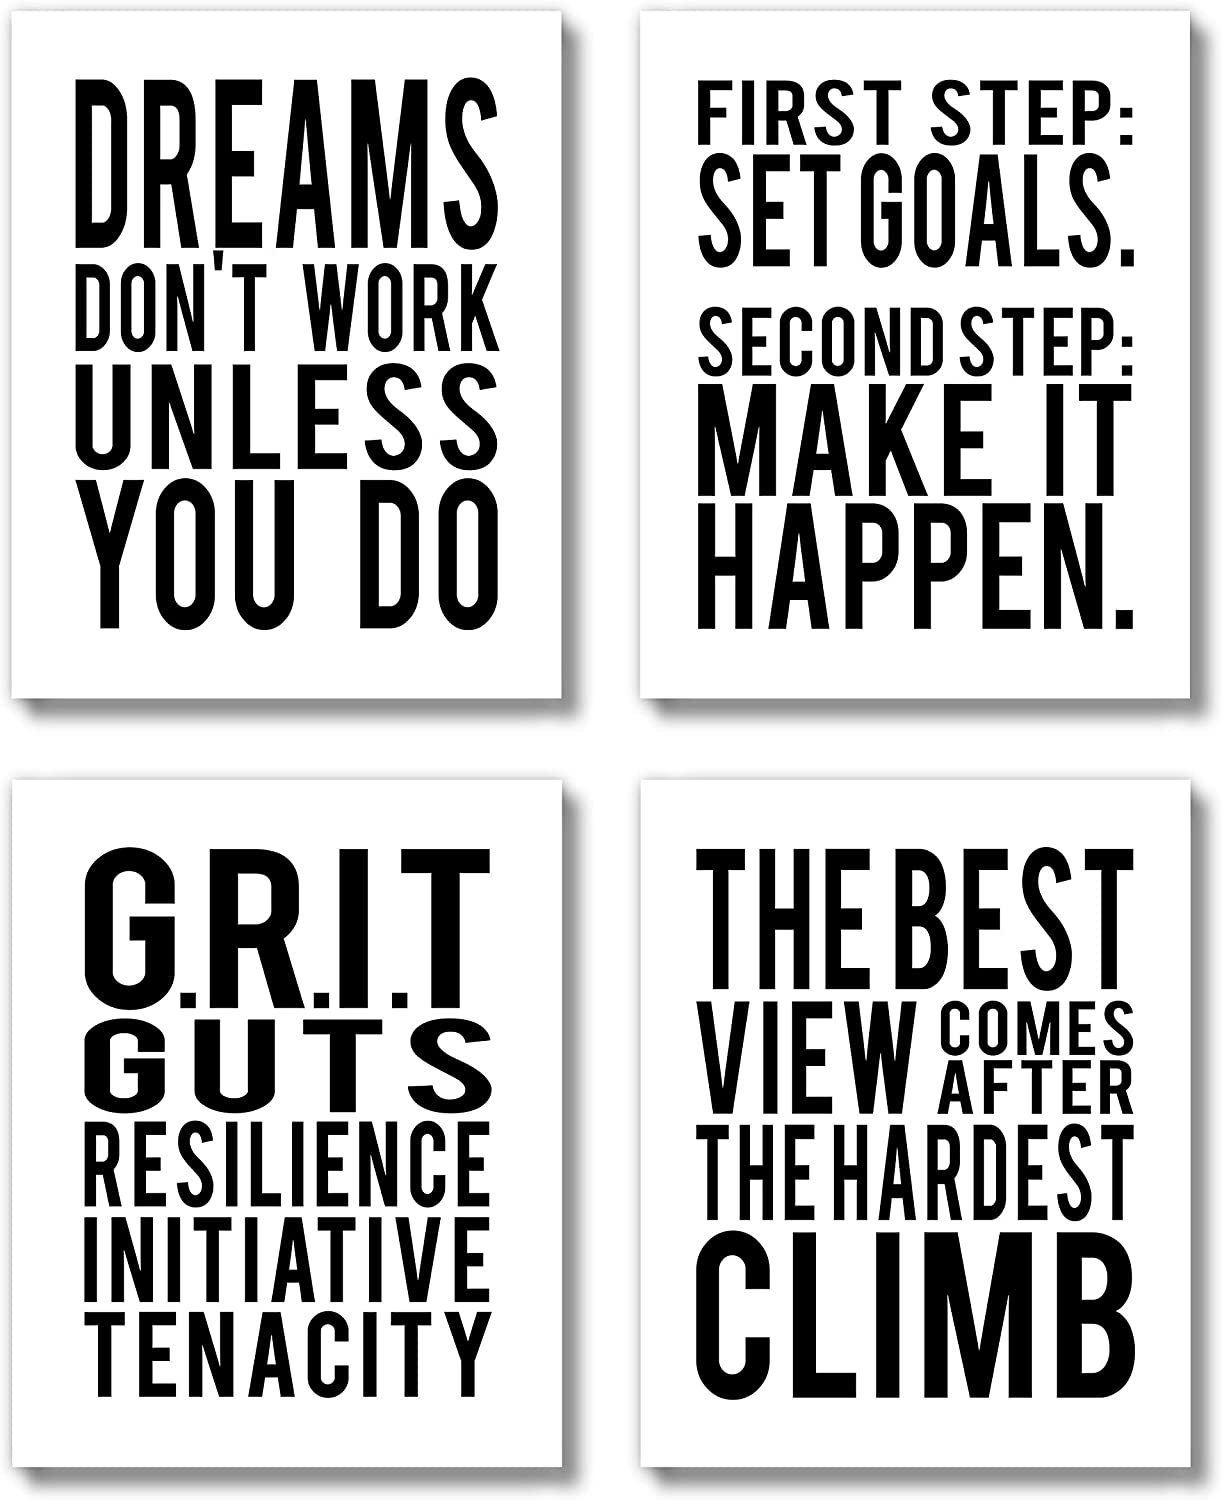 Brooke & Vine Motivational Quotes Wall Decor Posters Inspirational Wall Art Prints (UNFRAMED 8 x 10 Set of 4) Classroom Decorations - Office, Bedroom, Dorm, Cubicle, Gym - Goals, GritWhite